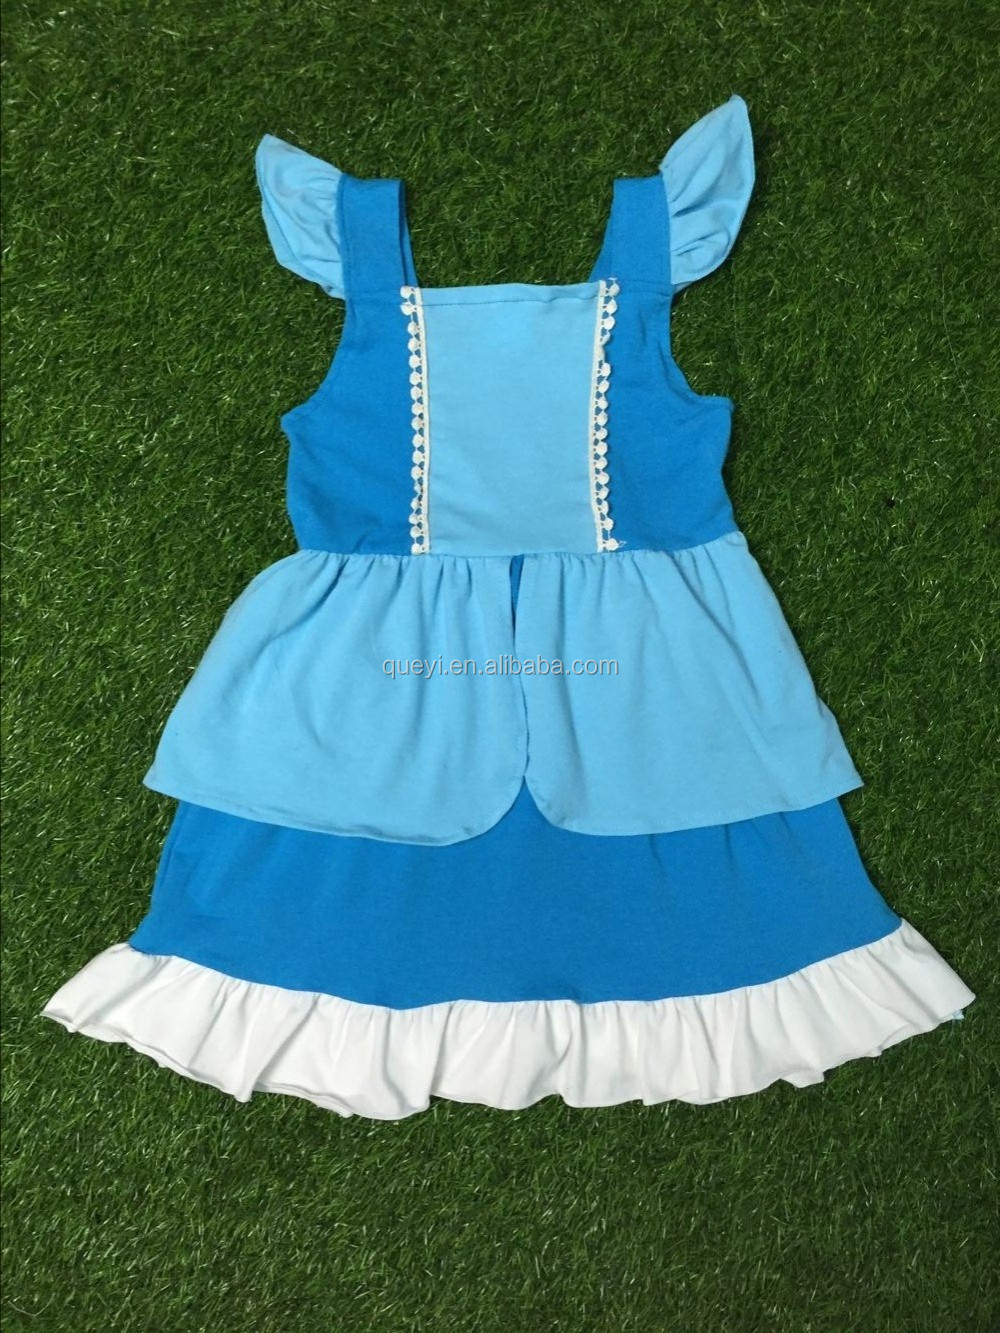 european kids clothes baby frock designs children fashion frock hot style